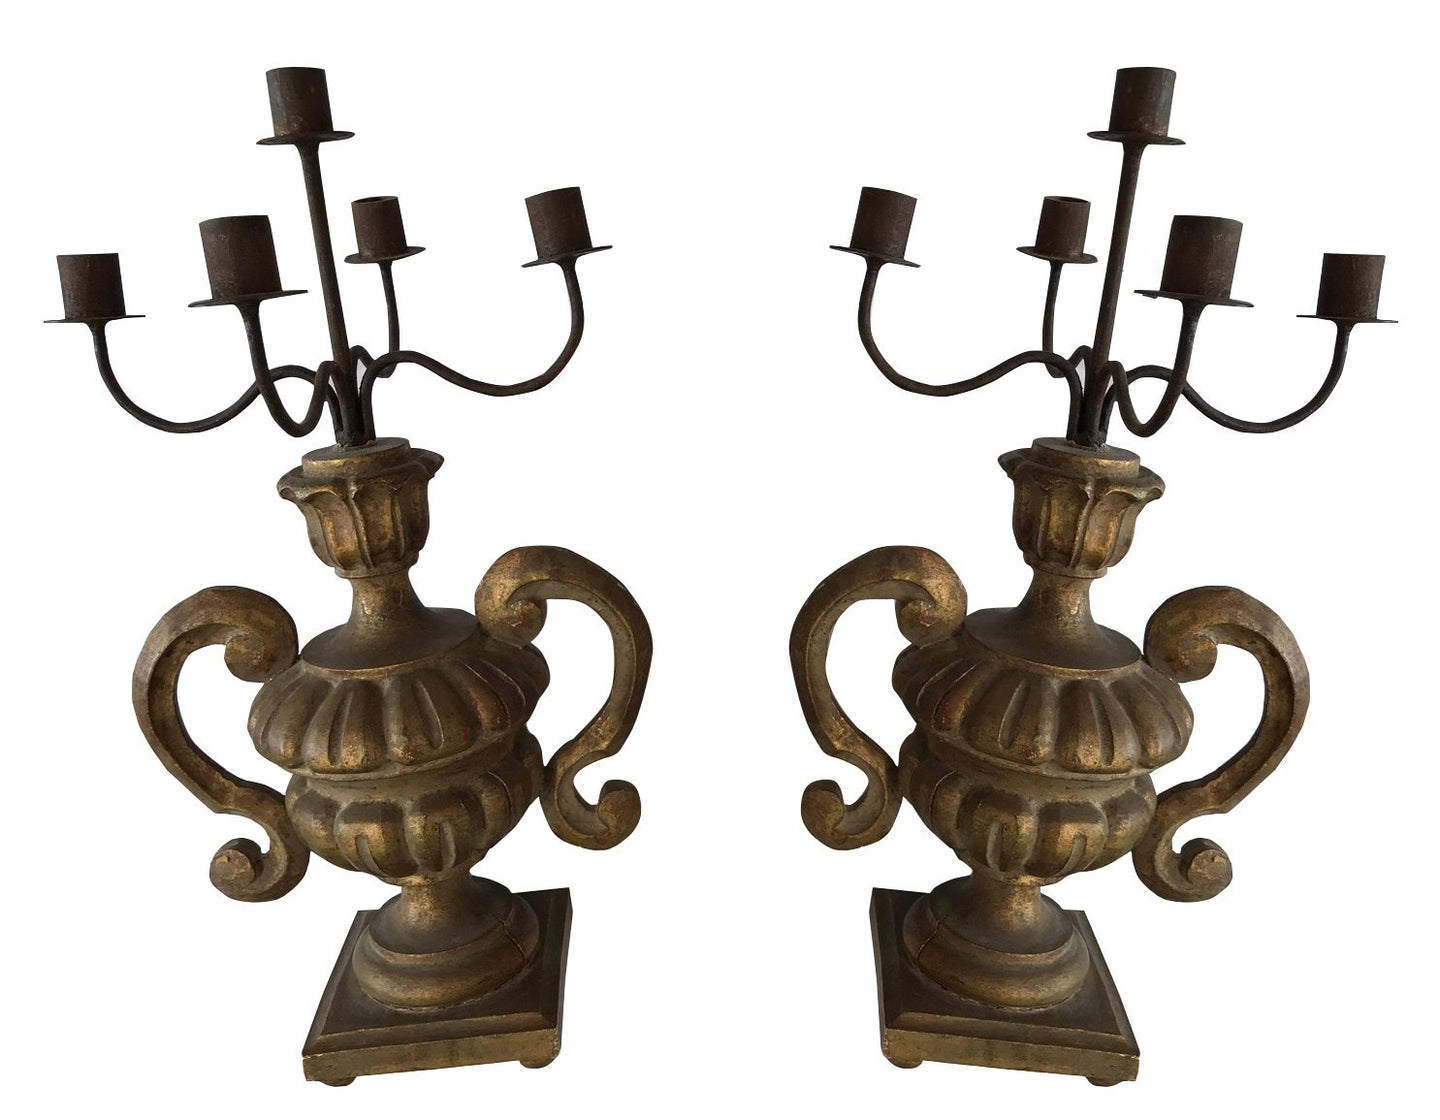 PAIR OF ITALIAN CANDELABRAS